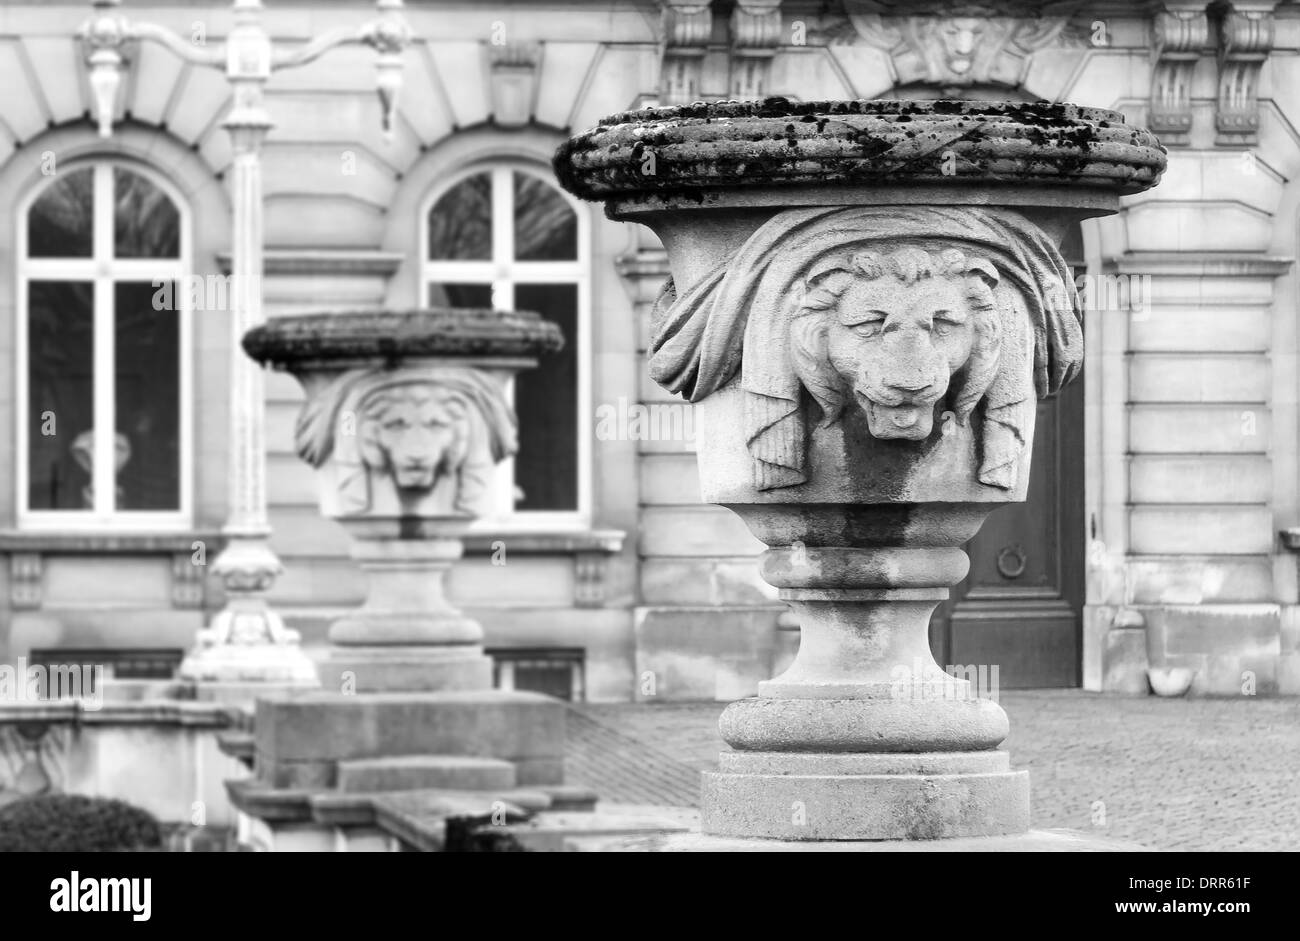 Sculptures in front of Belgian Royal palace in Brussels Stock Photo